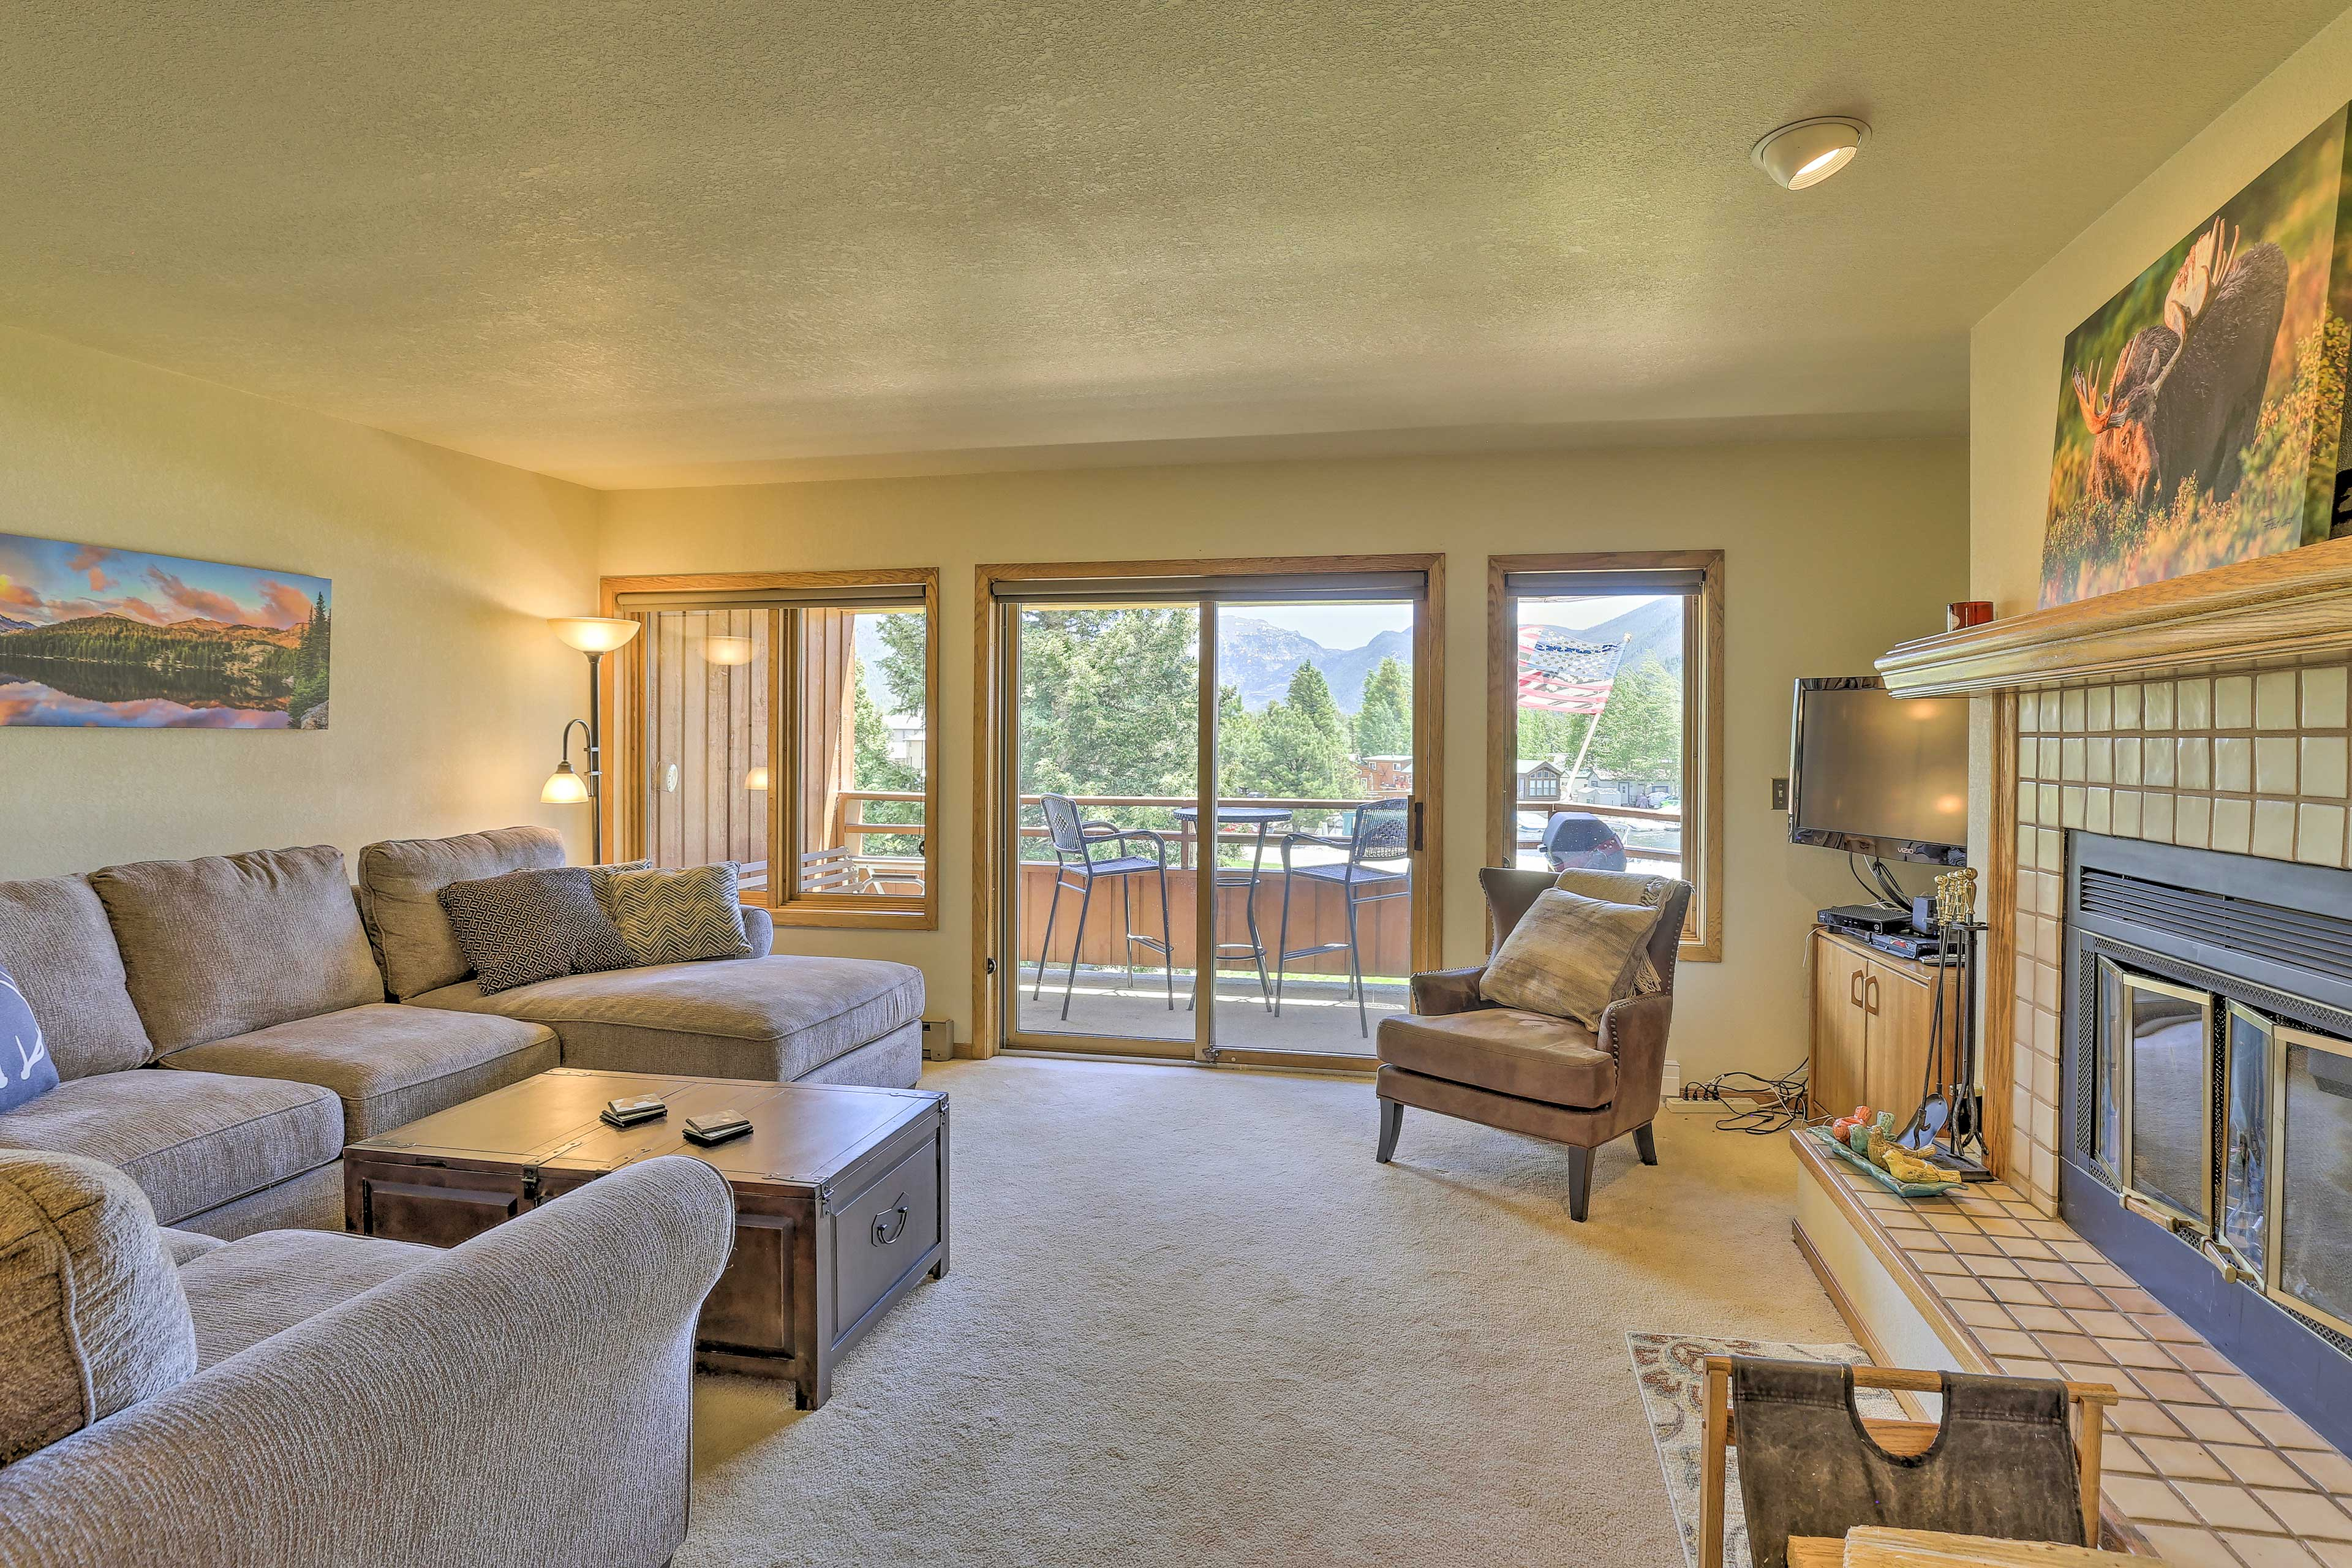 After boating on the lake, relax in this spacious 1,250-square-foot condo.